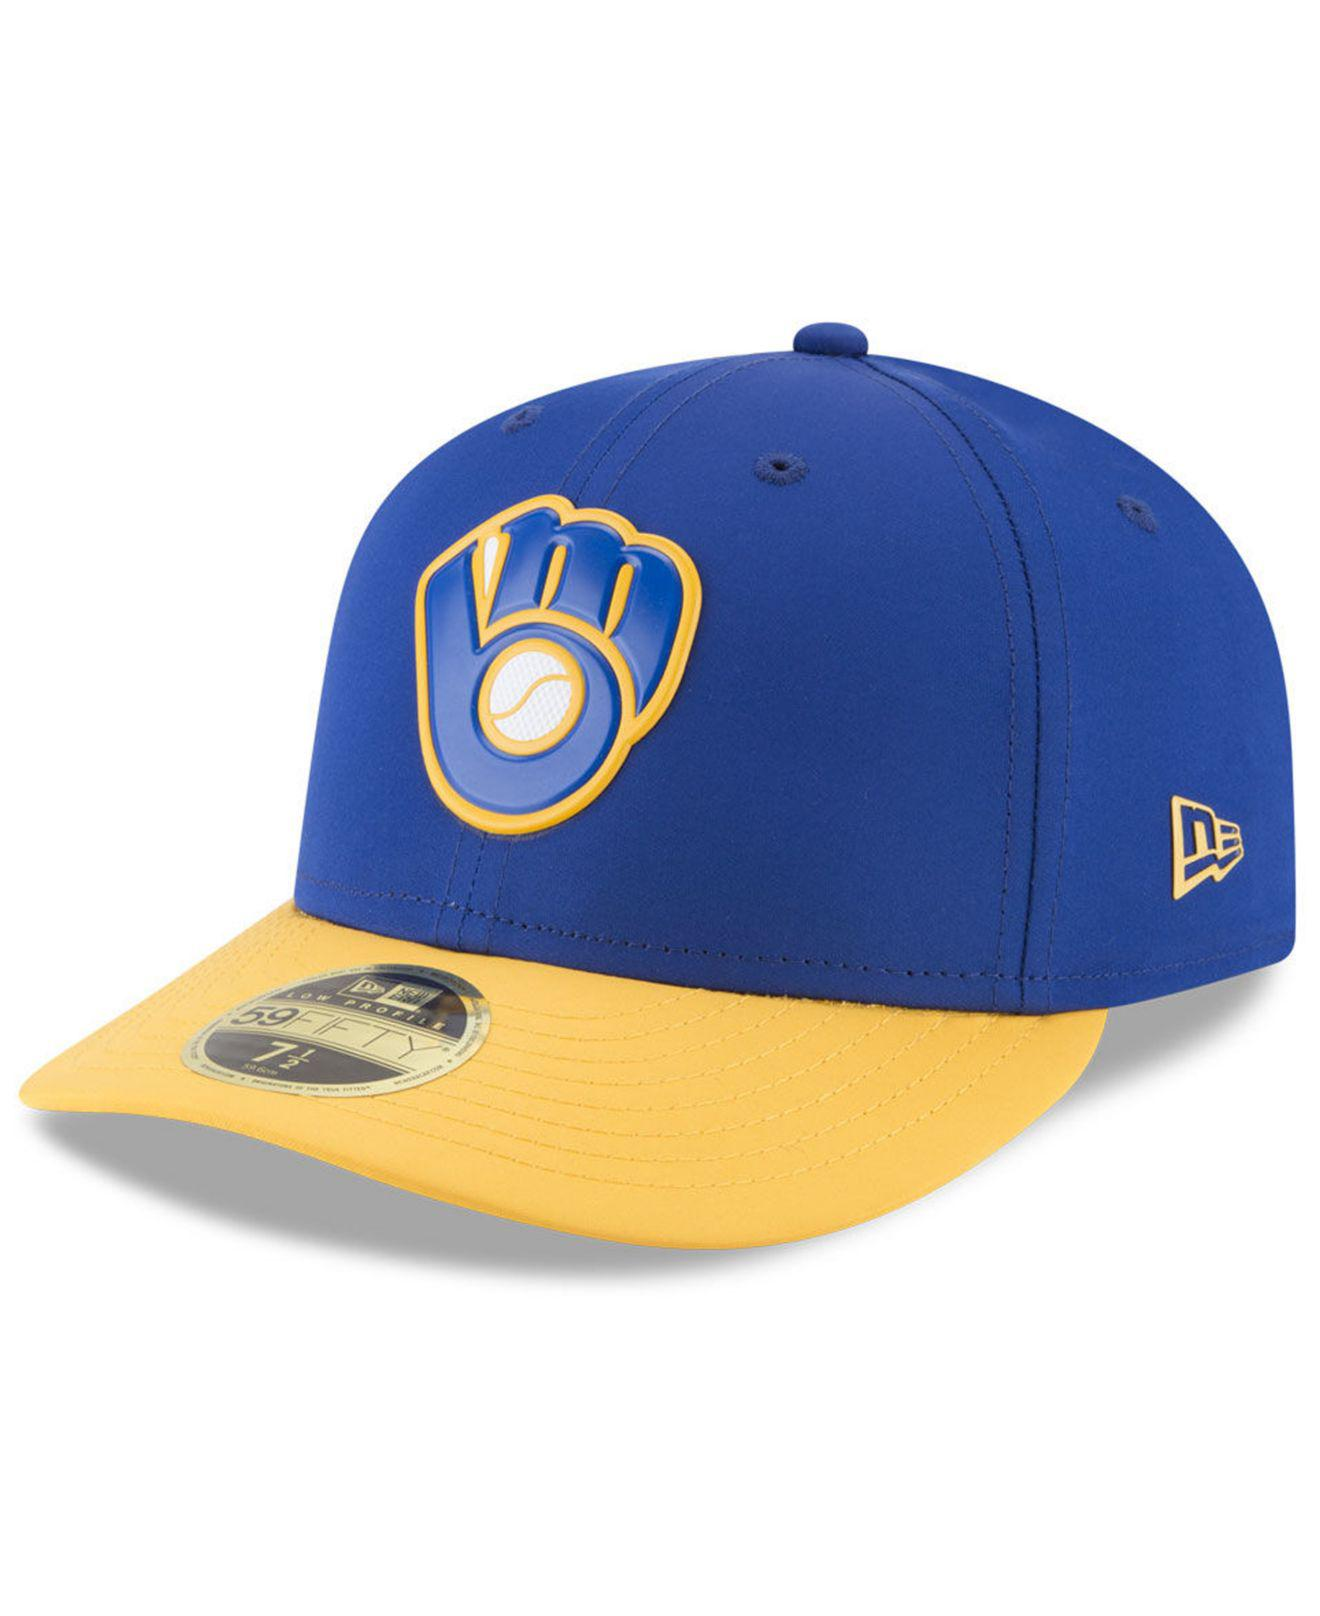 huge discount 0aeca fdd6e uk milwaukee brewers new era mlb low profile turn back the clock 59fifty cap  0d86c ed17f  get ktz. mens blue milwaukee brewers low profile batting  practice ...